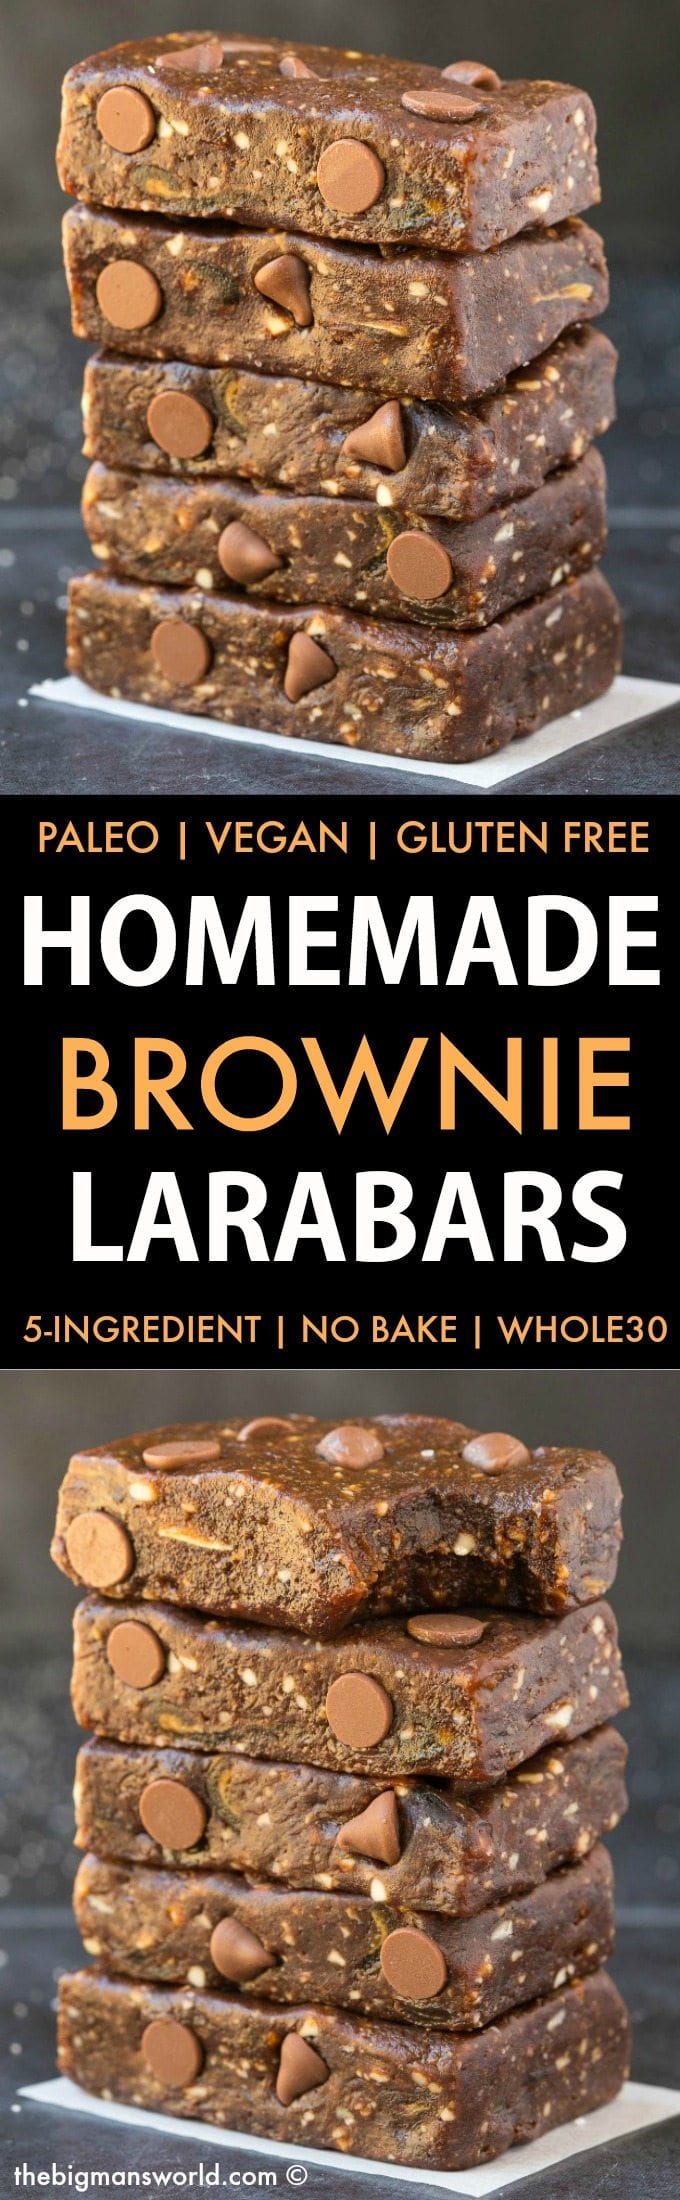 Homemade No Bake Brownie Larabars (Paleo, Vegan, Whole30, Refined Sugar Free)- Homemade copycat recipe for brownie larabars. 5 ingredients, 5 minutes and with a whole30 approved option! #whole30approved #whole30recipe #nobake #energybars | Recipe on thebigmansworld.com